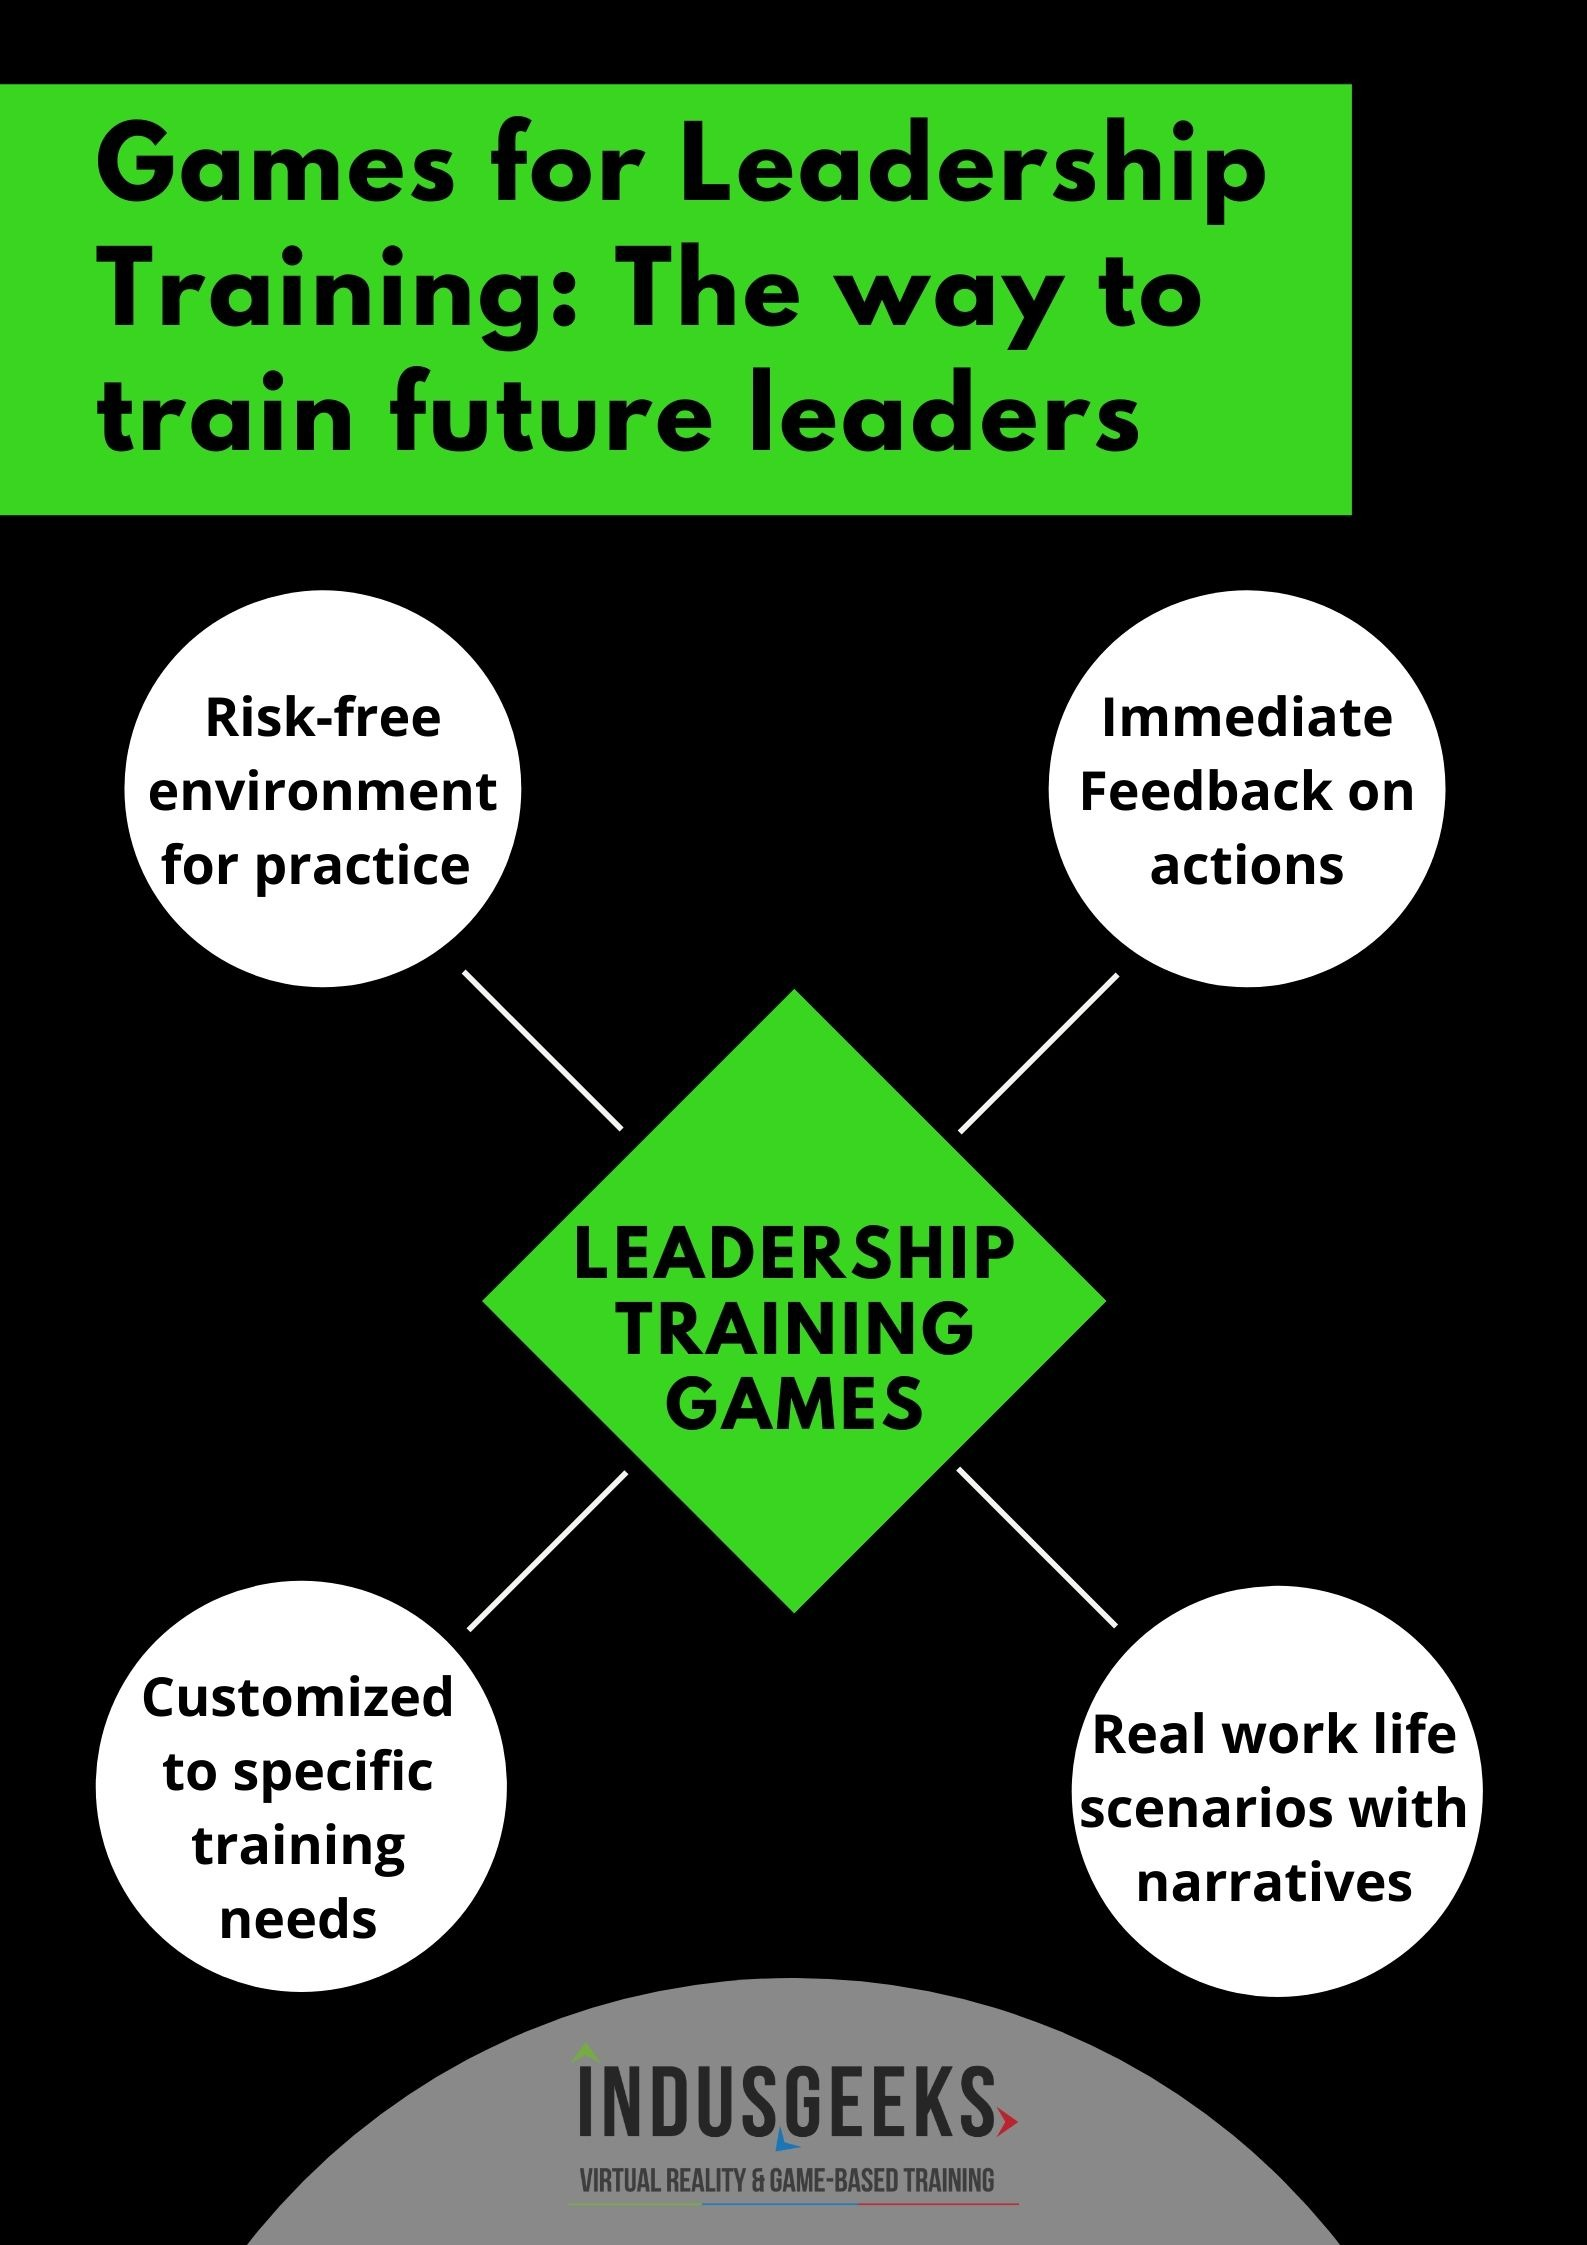 Games for Leadership training: The way to train future leaders